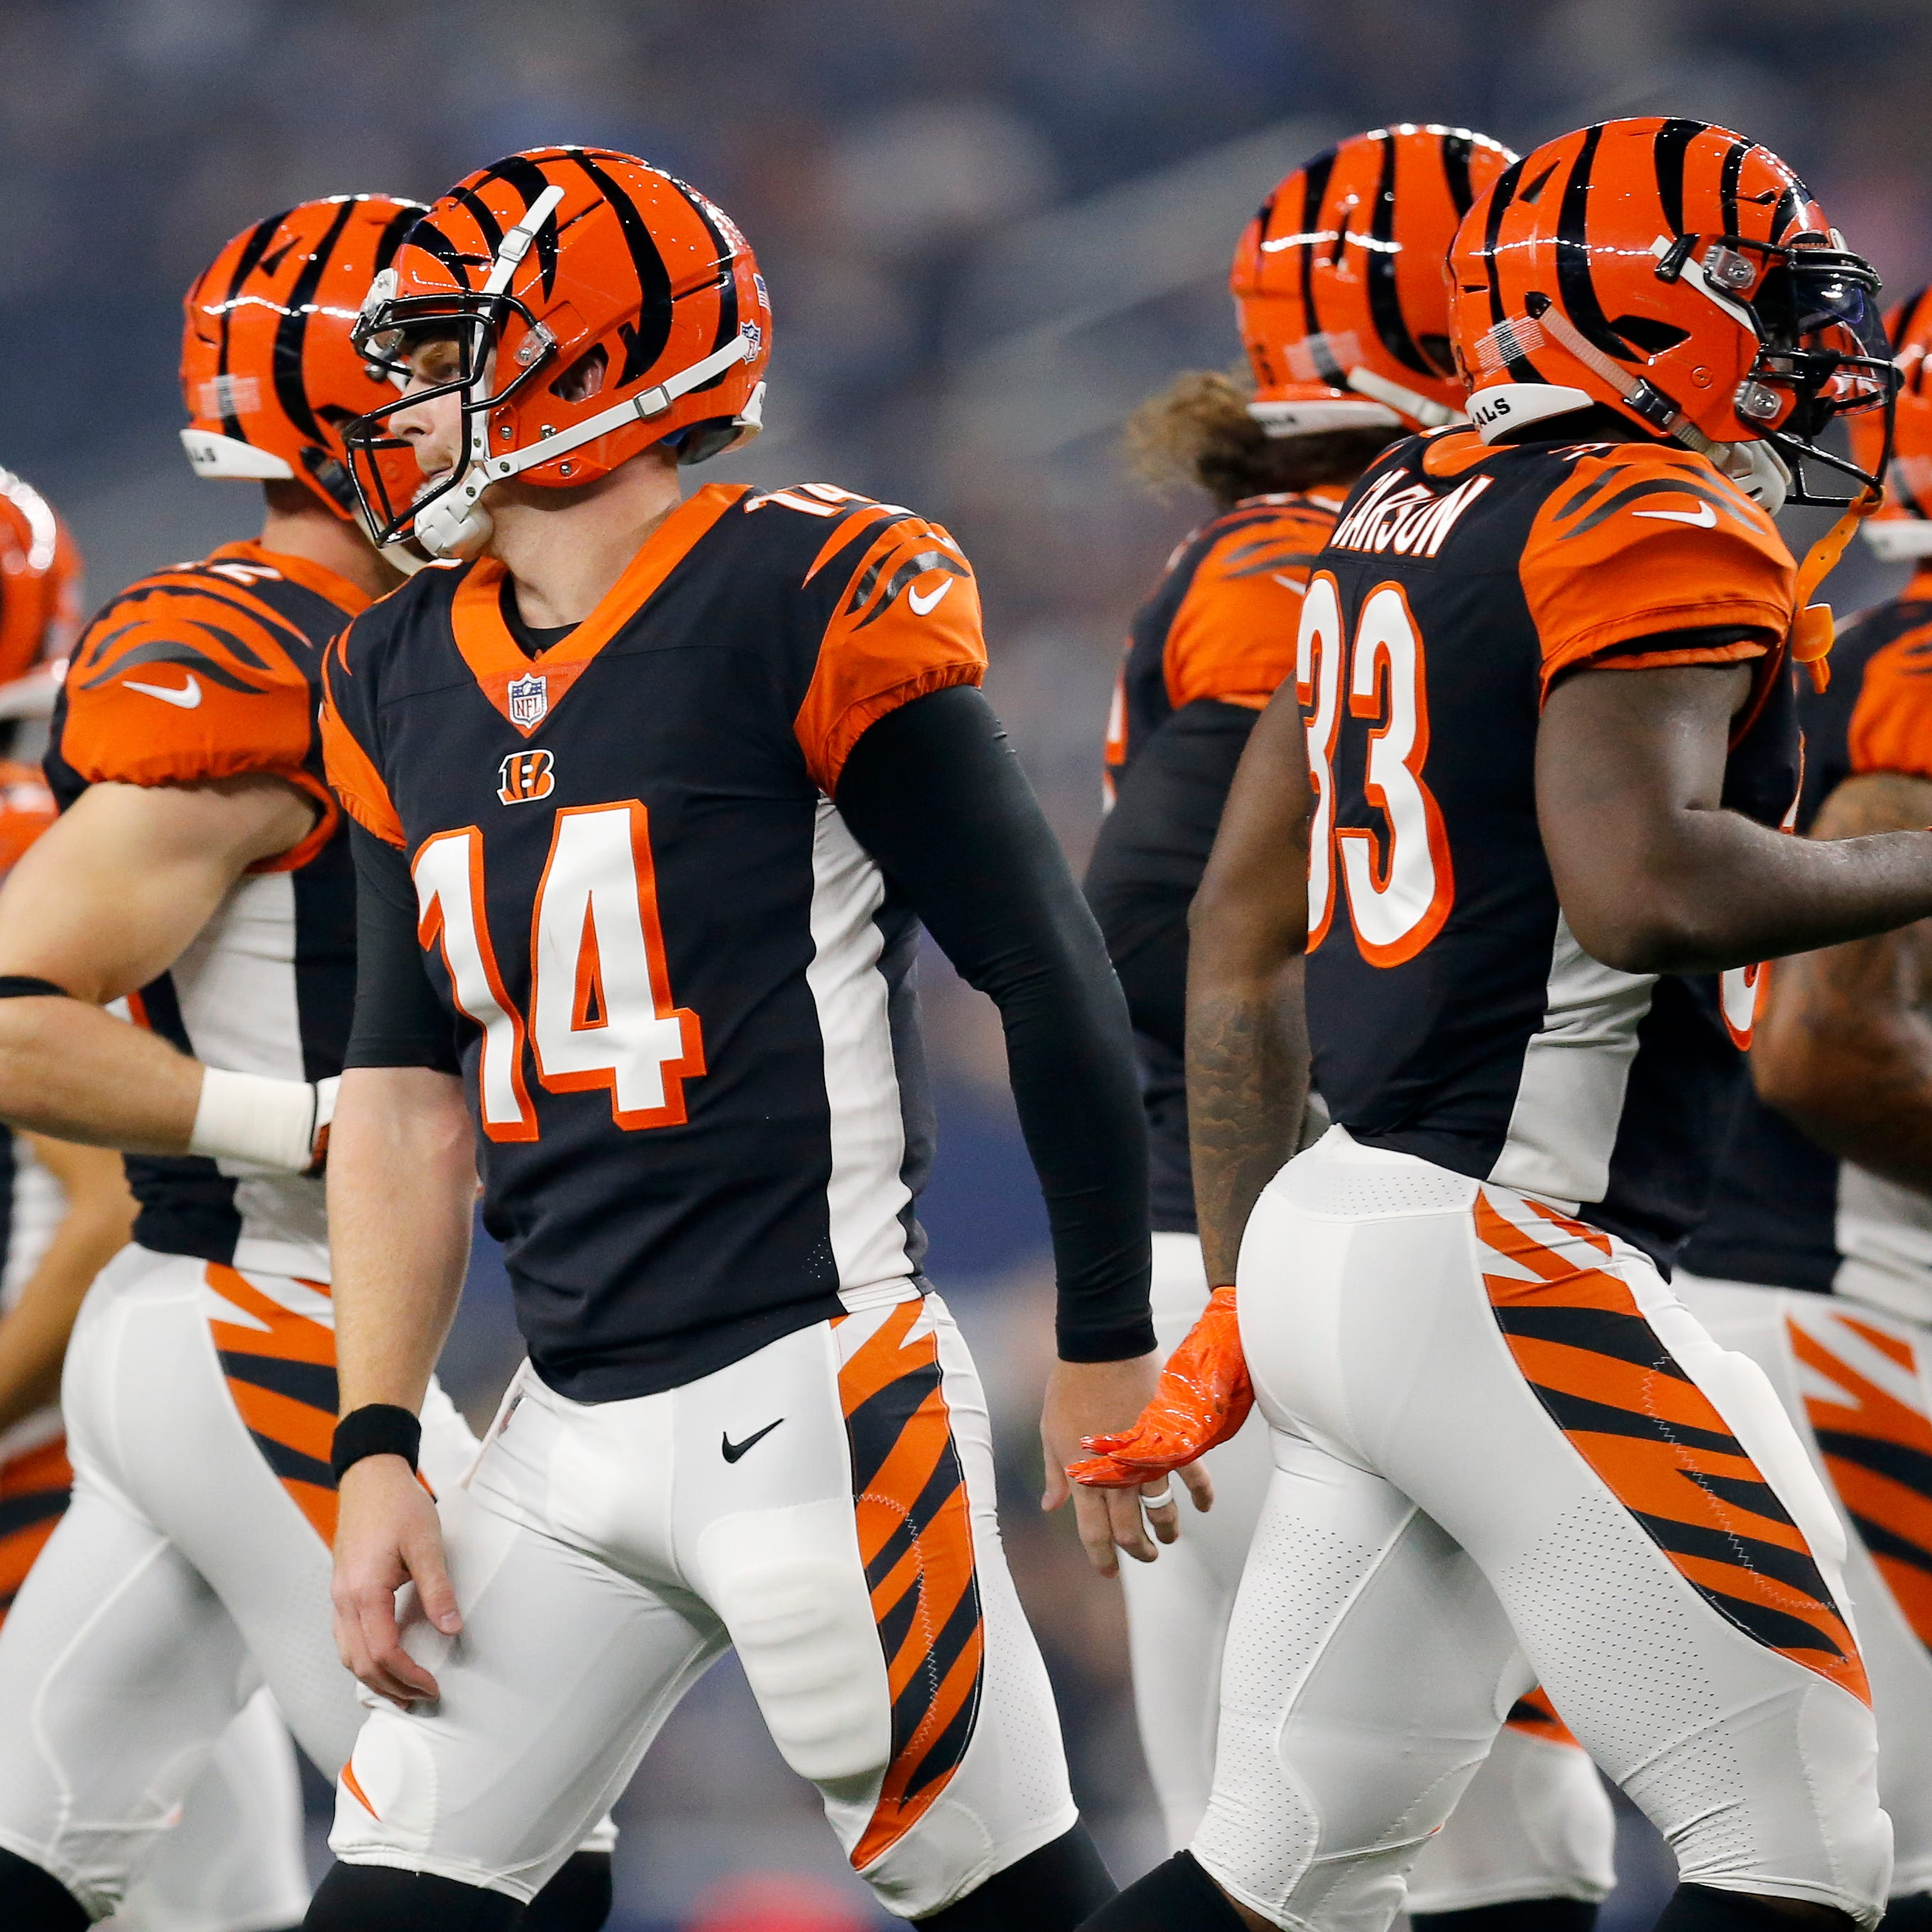 Doc's Morning Line: Bengals still have big issues in front of Andy Dalton, farewell Iloka